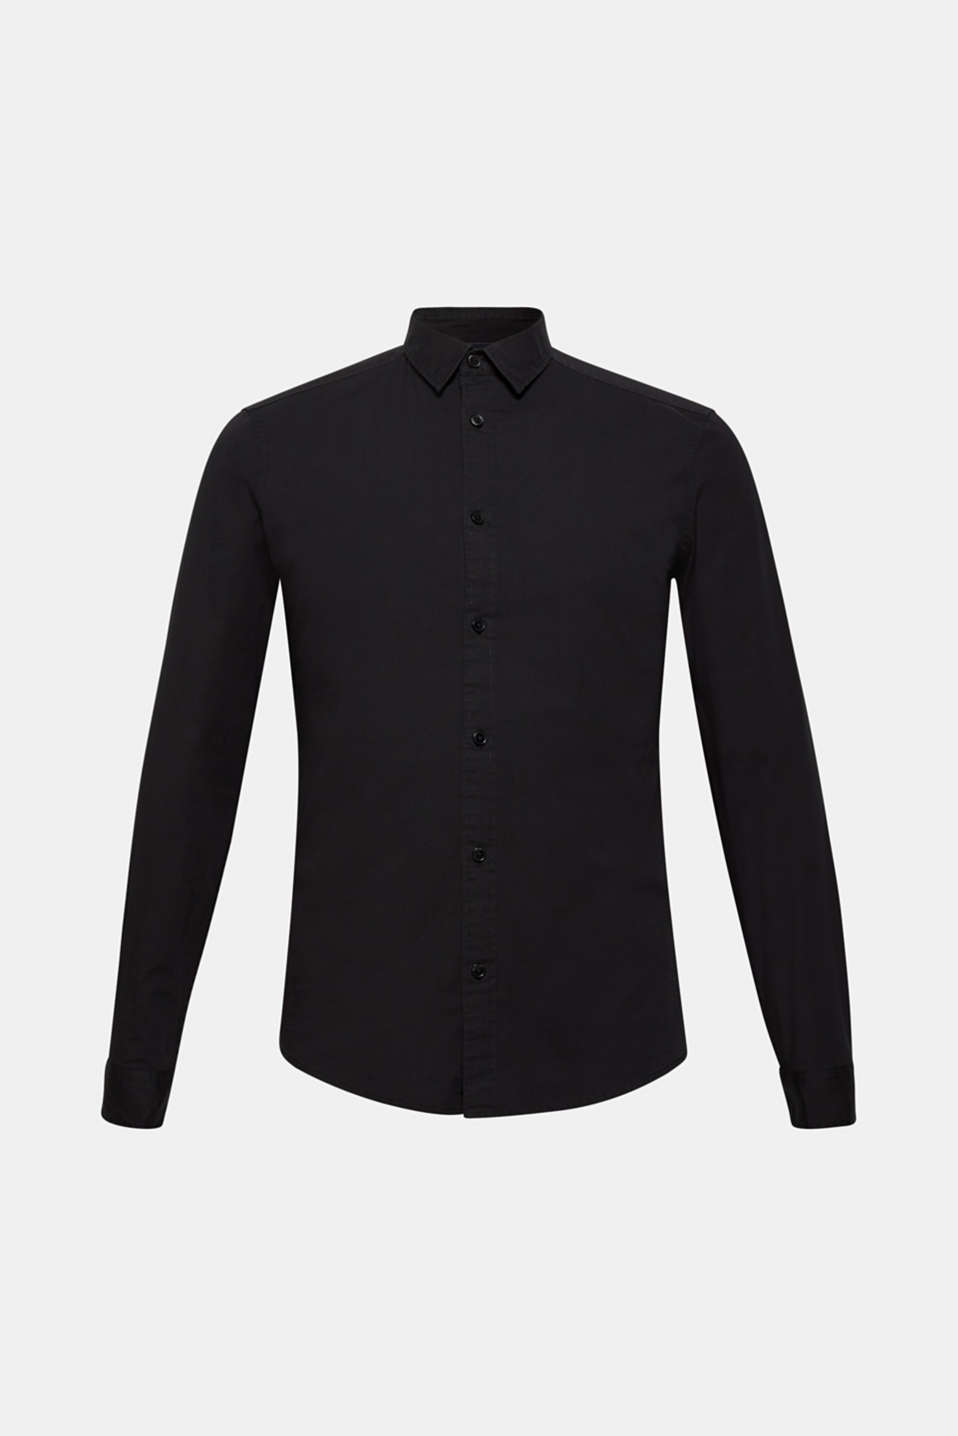 Shirts woven Slim fit, BLACK 2, detail image number 7